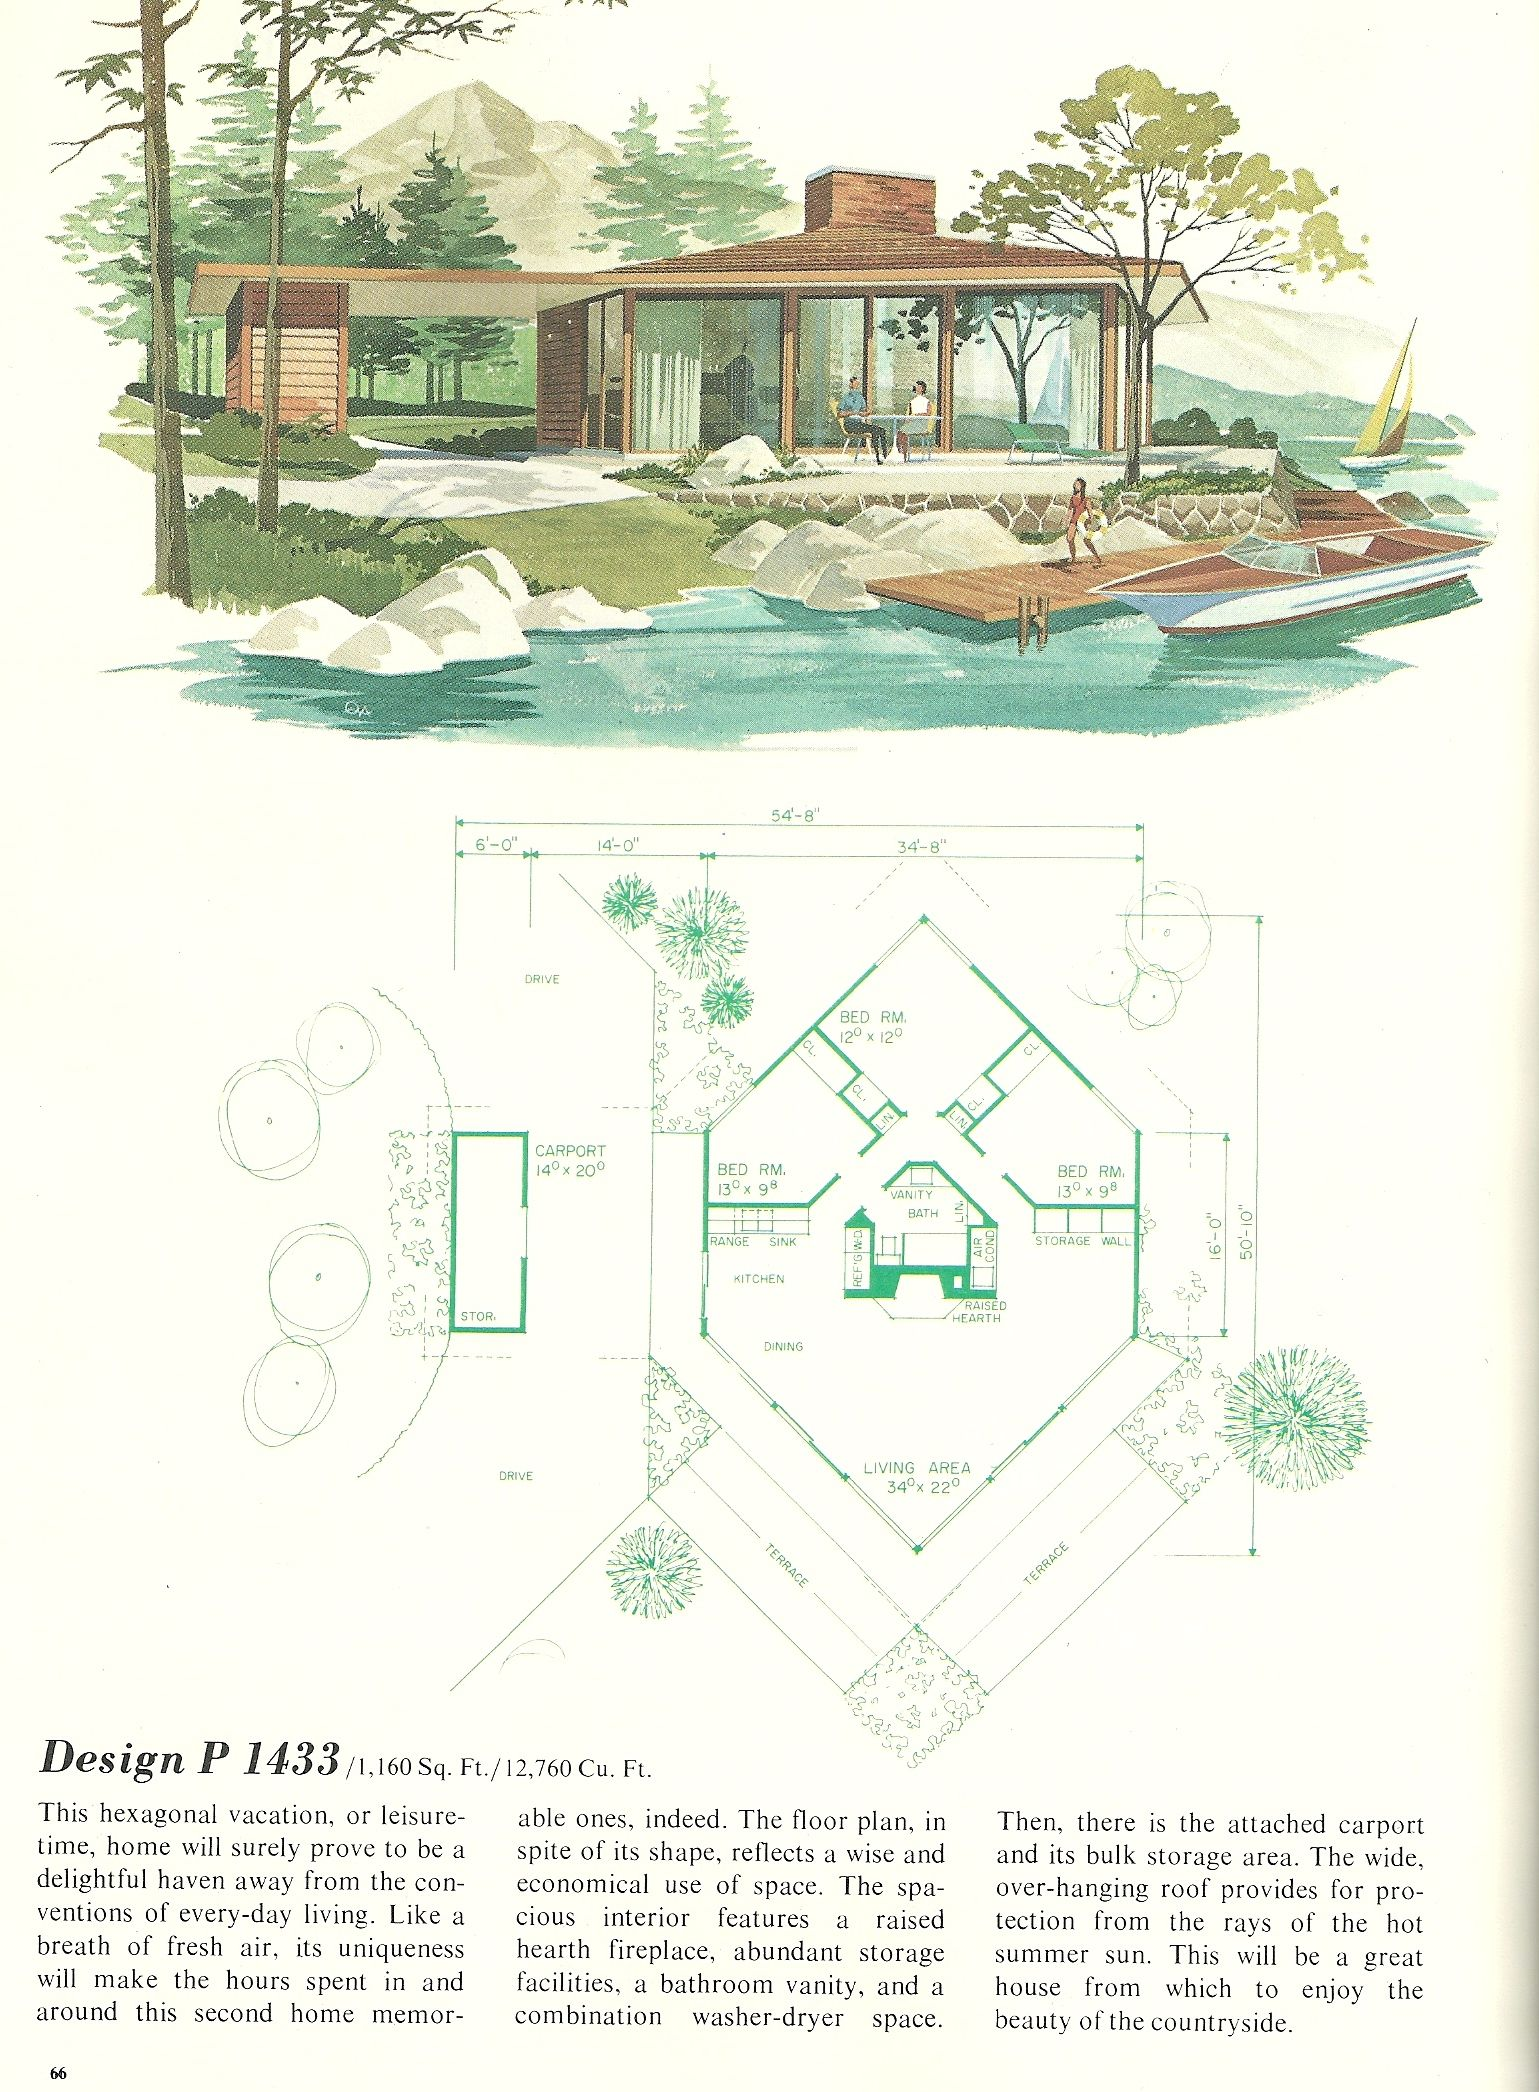 Vintage Vacation Home Plans 1433 Vacation House Plans Vintage House Plans Vintage House